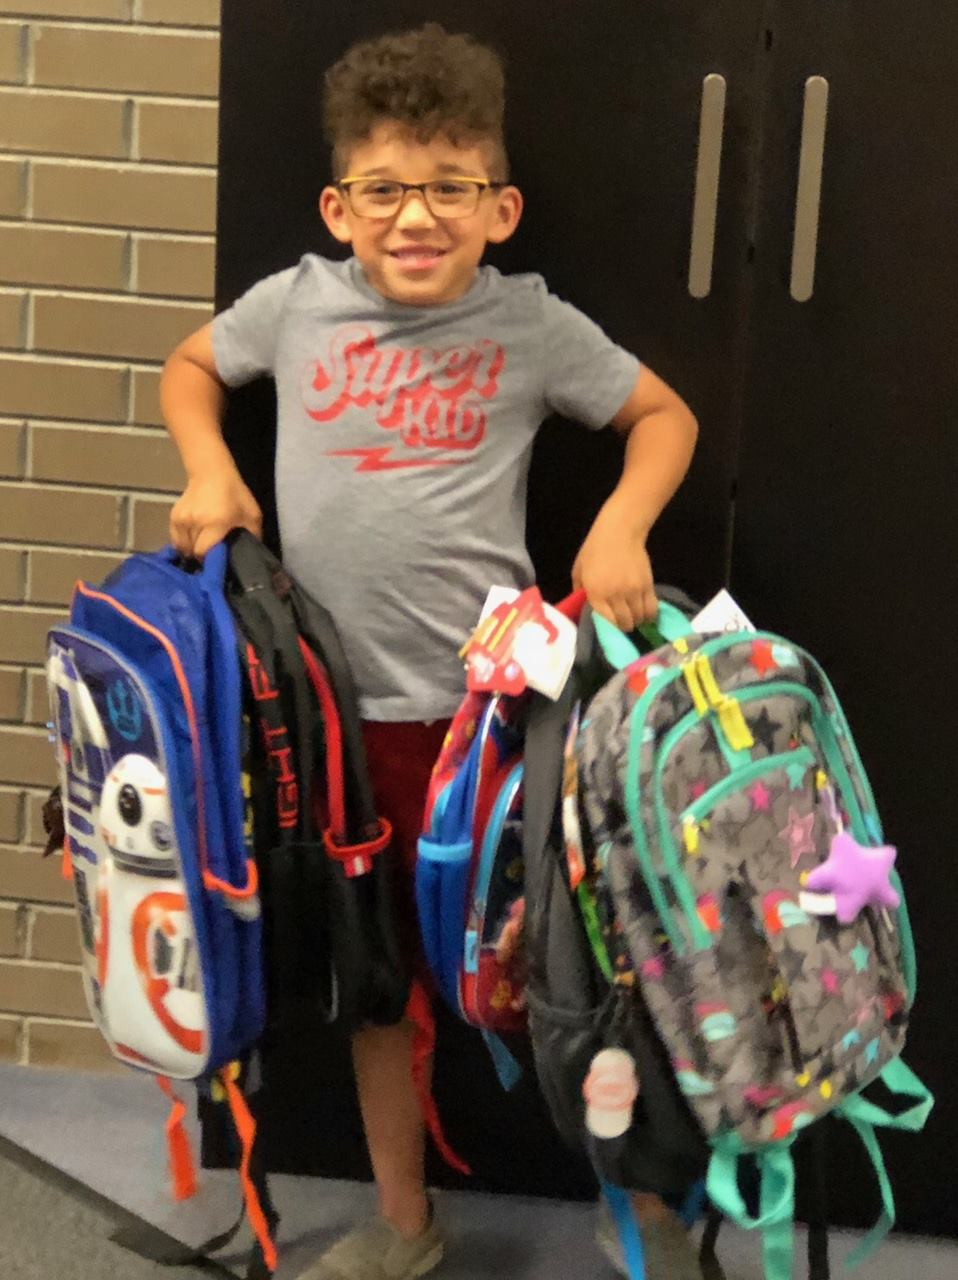 William and the backpacks donated from his birthday party!